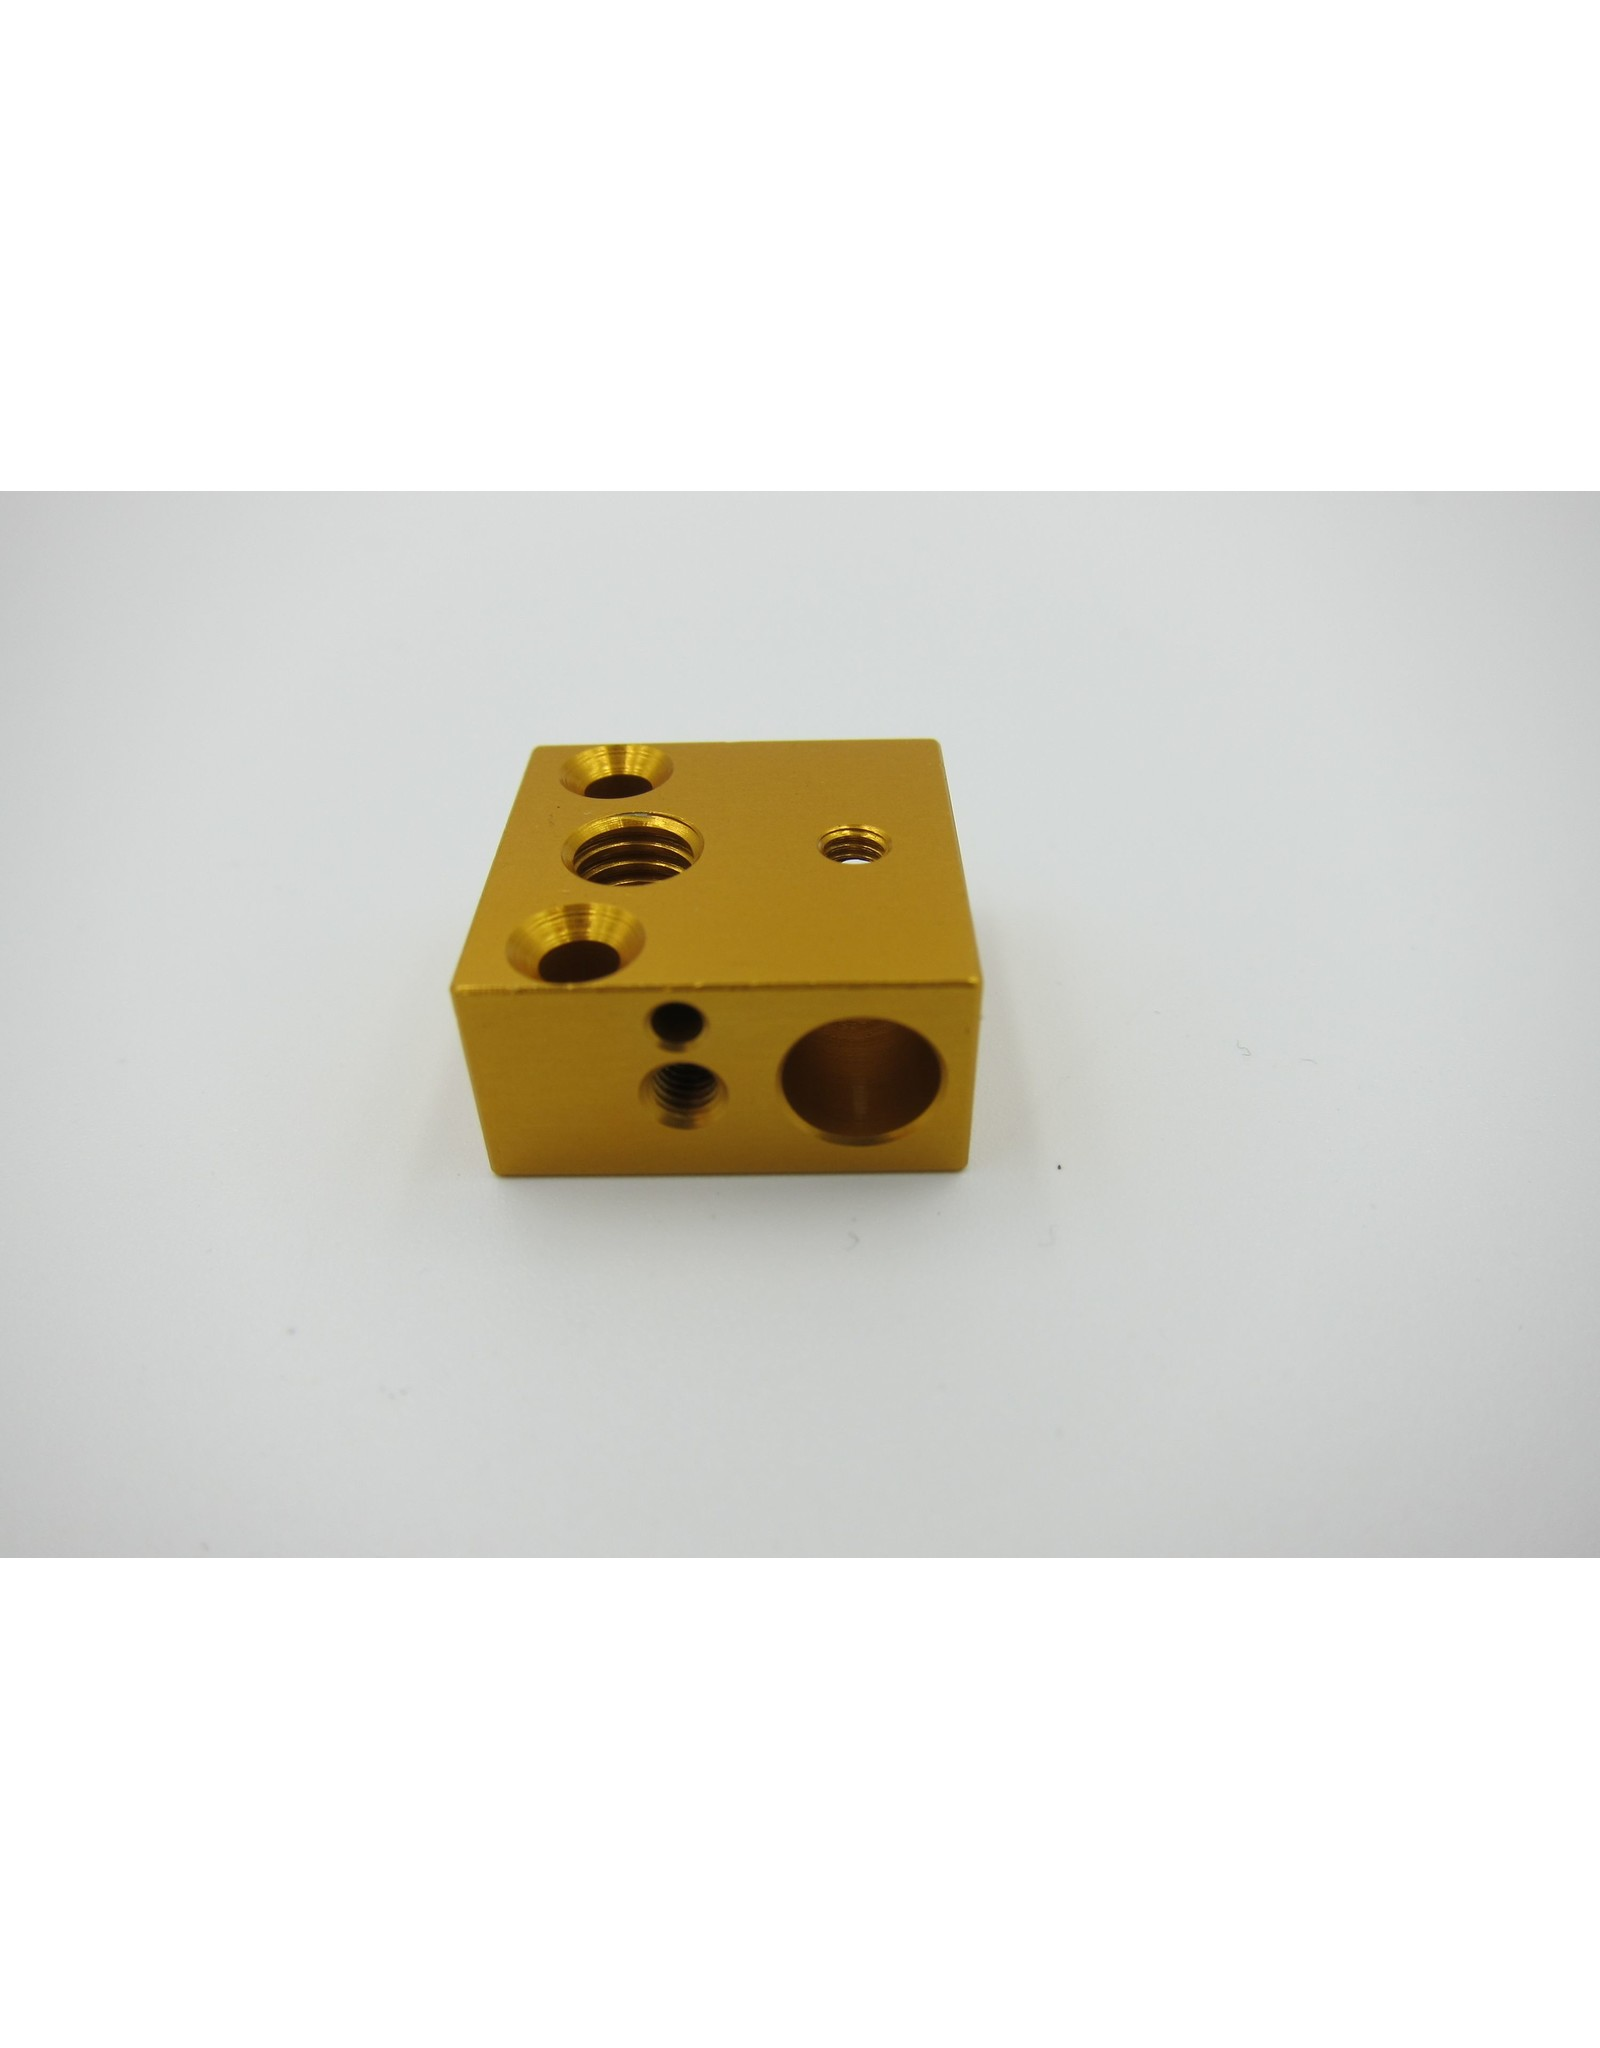 Creality/Ender Creality CR-10/Ender series Hot-end aluminum block